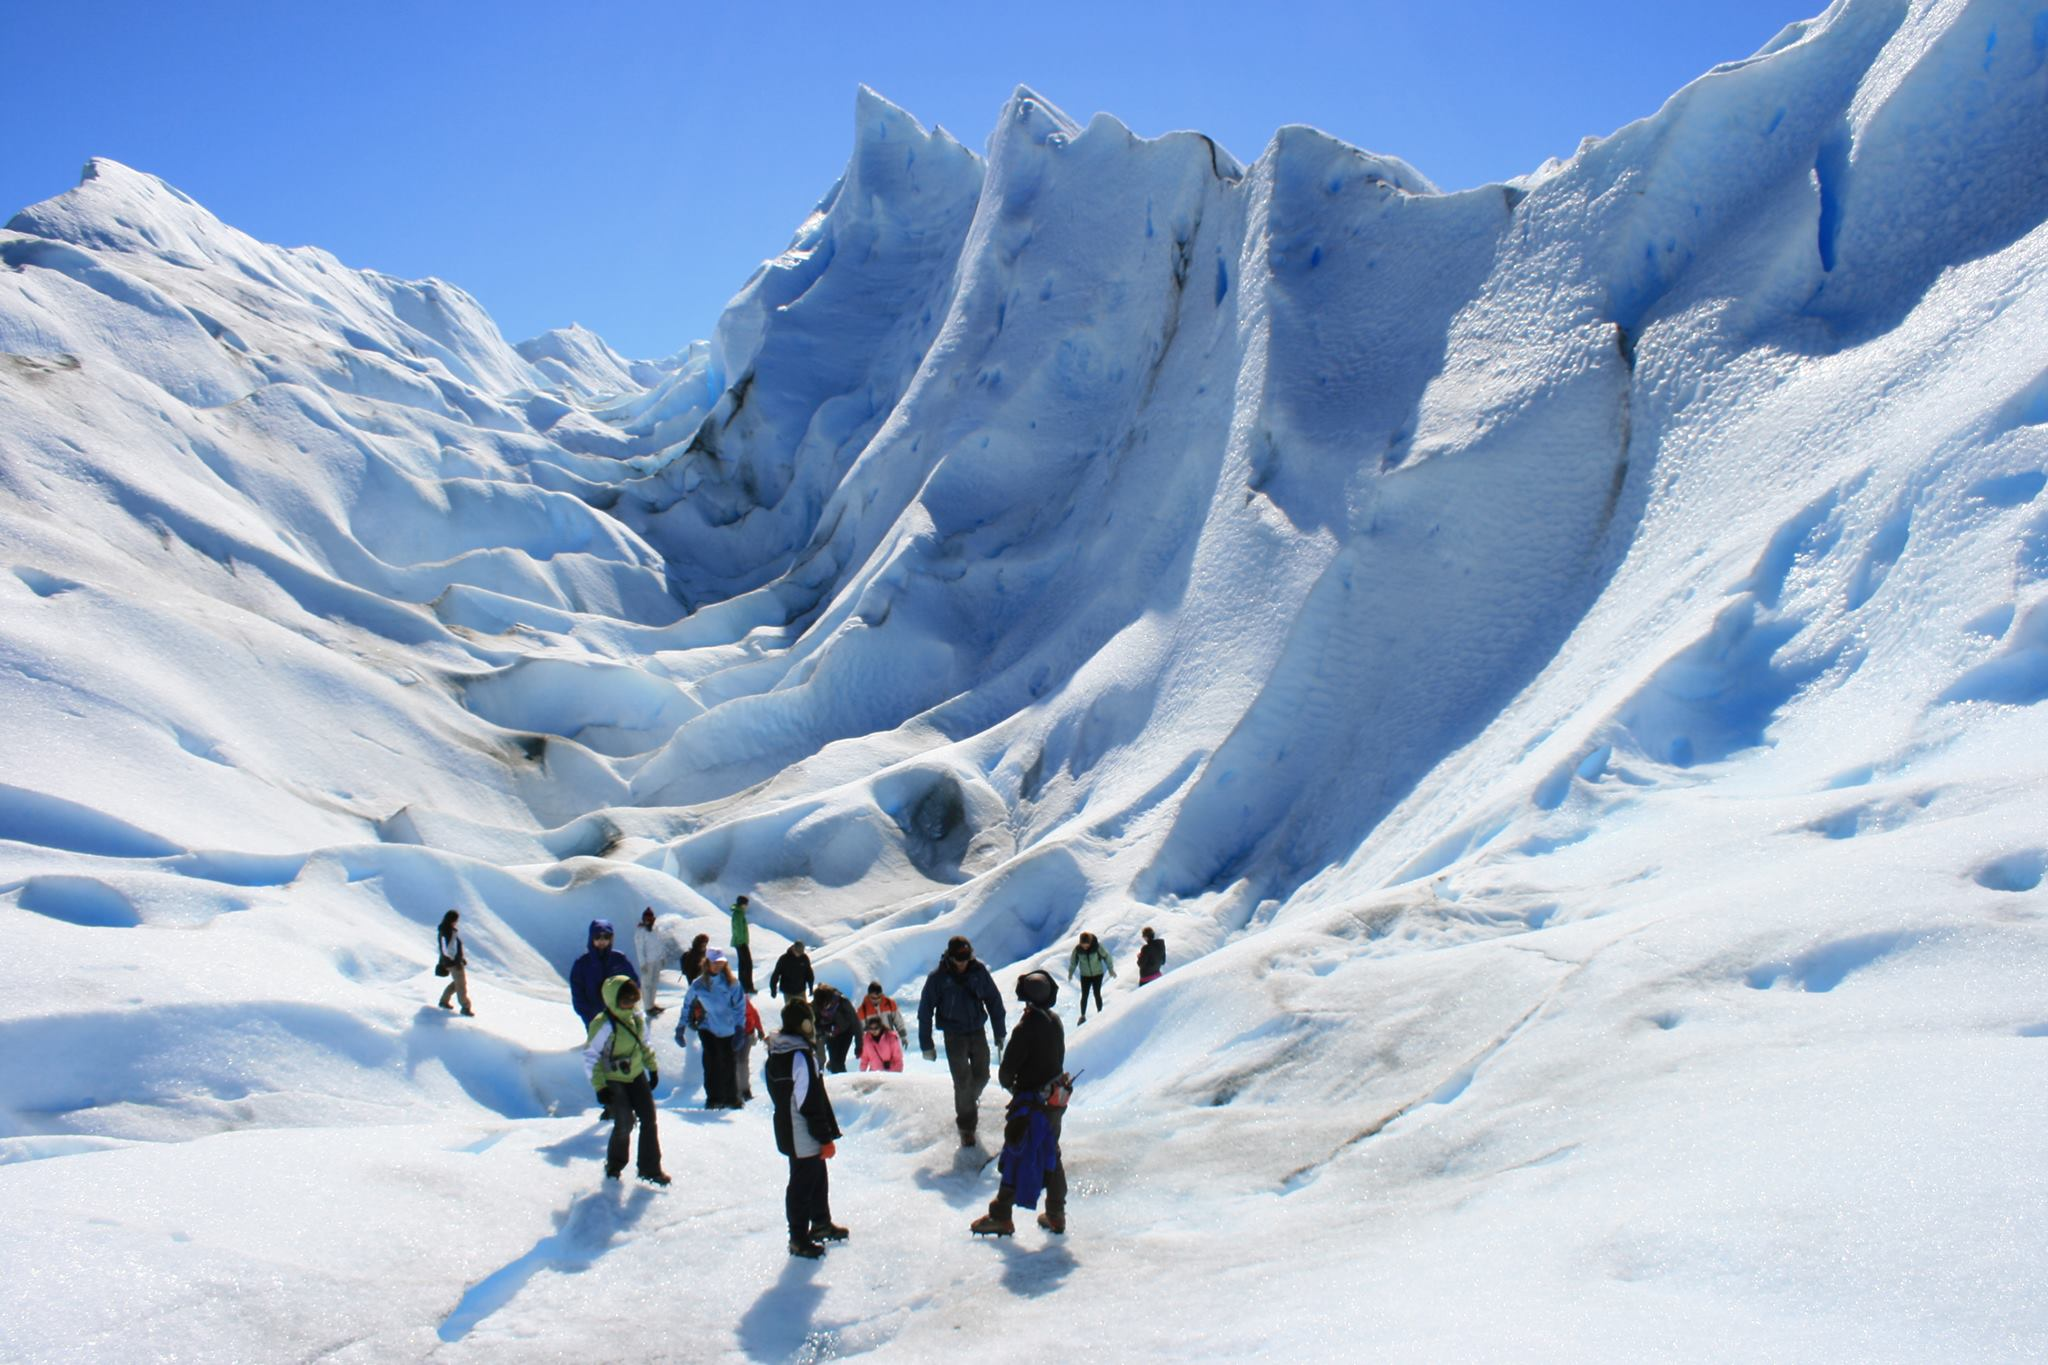 11 Minitrekking over de Perito Moreno gletsjer | Patagonie rondreis argentinie - Around The World Travel